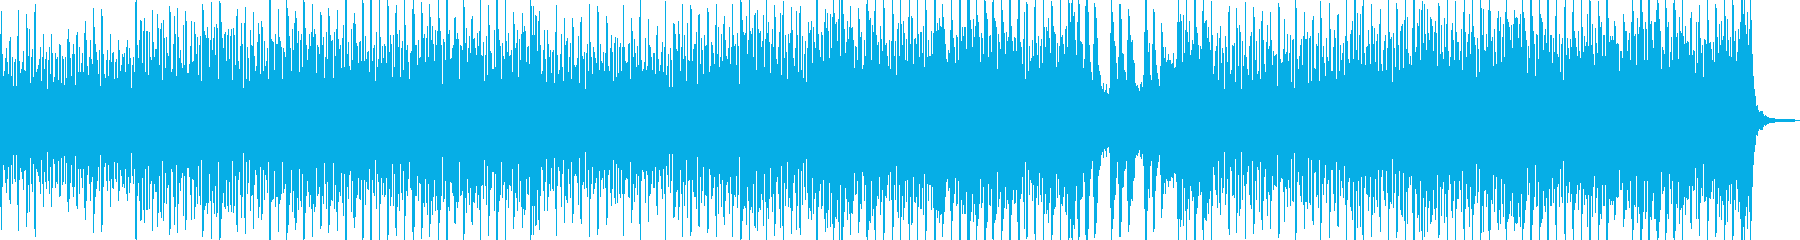 Frozen snowstorm / RPG without percussion A's reproduced waveform